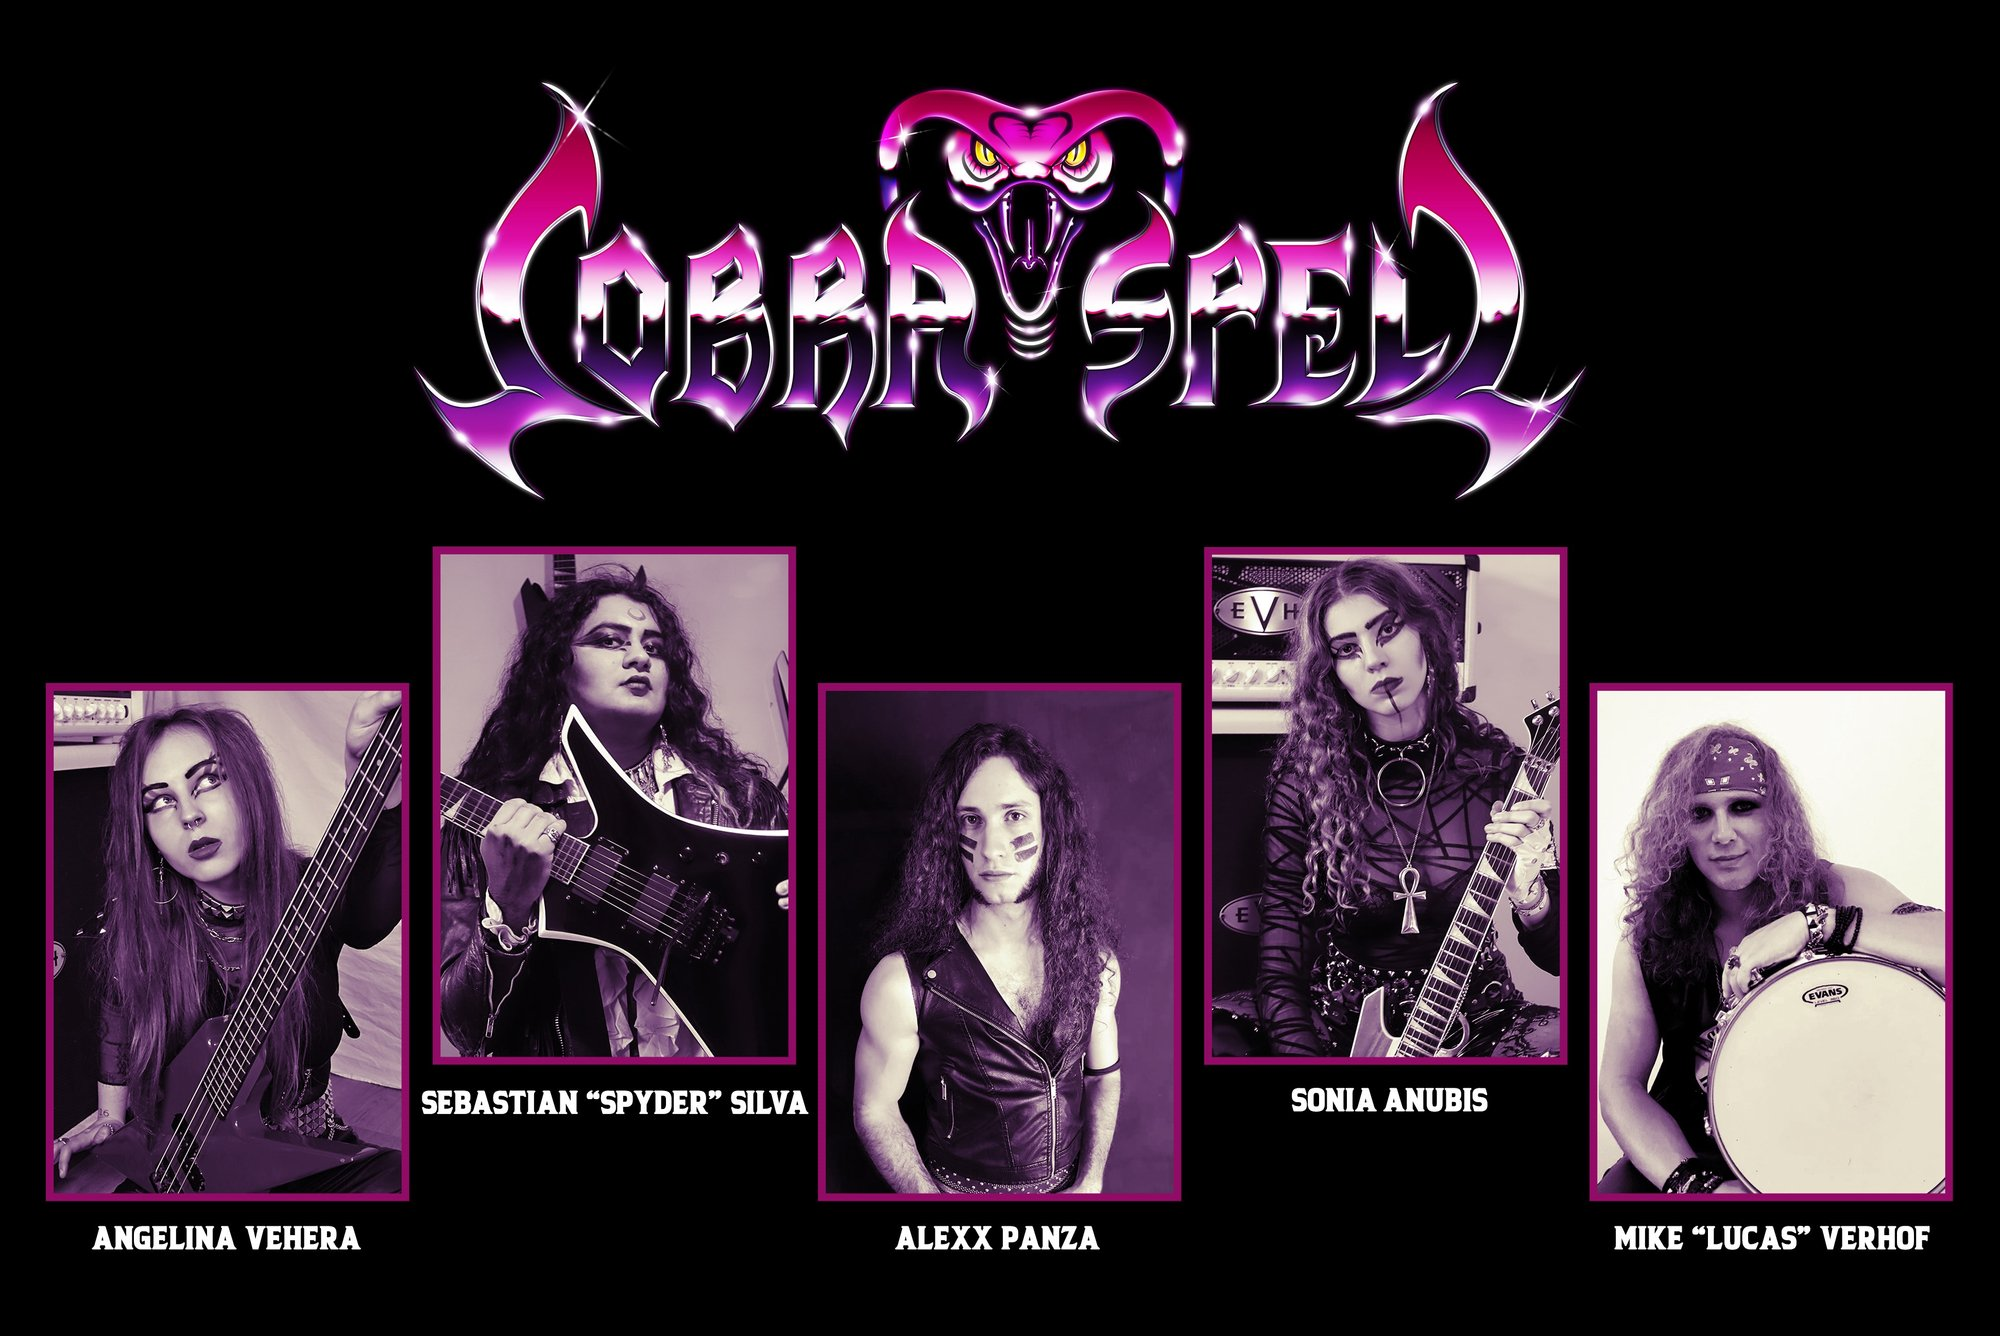 Interview with COBRA SPELL - FILTHY DOGS OF METAL